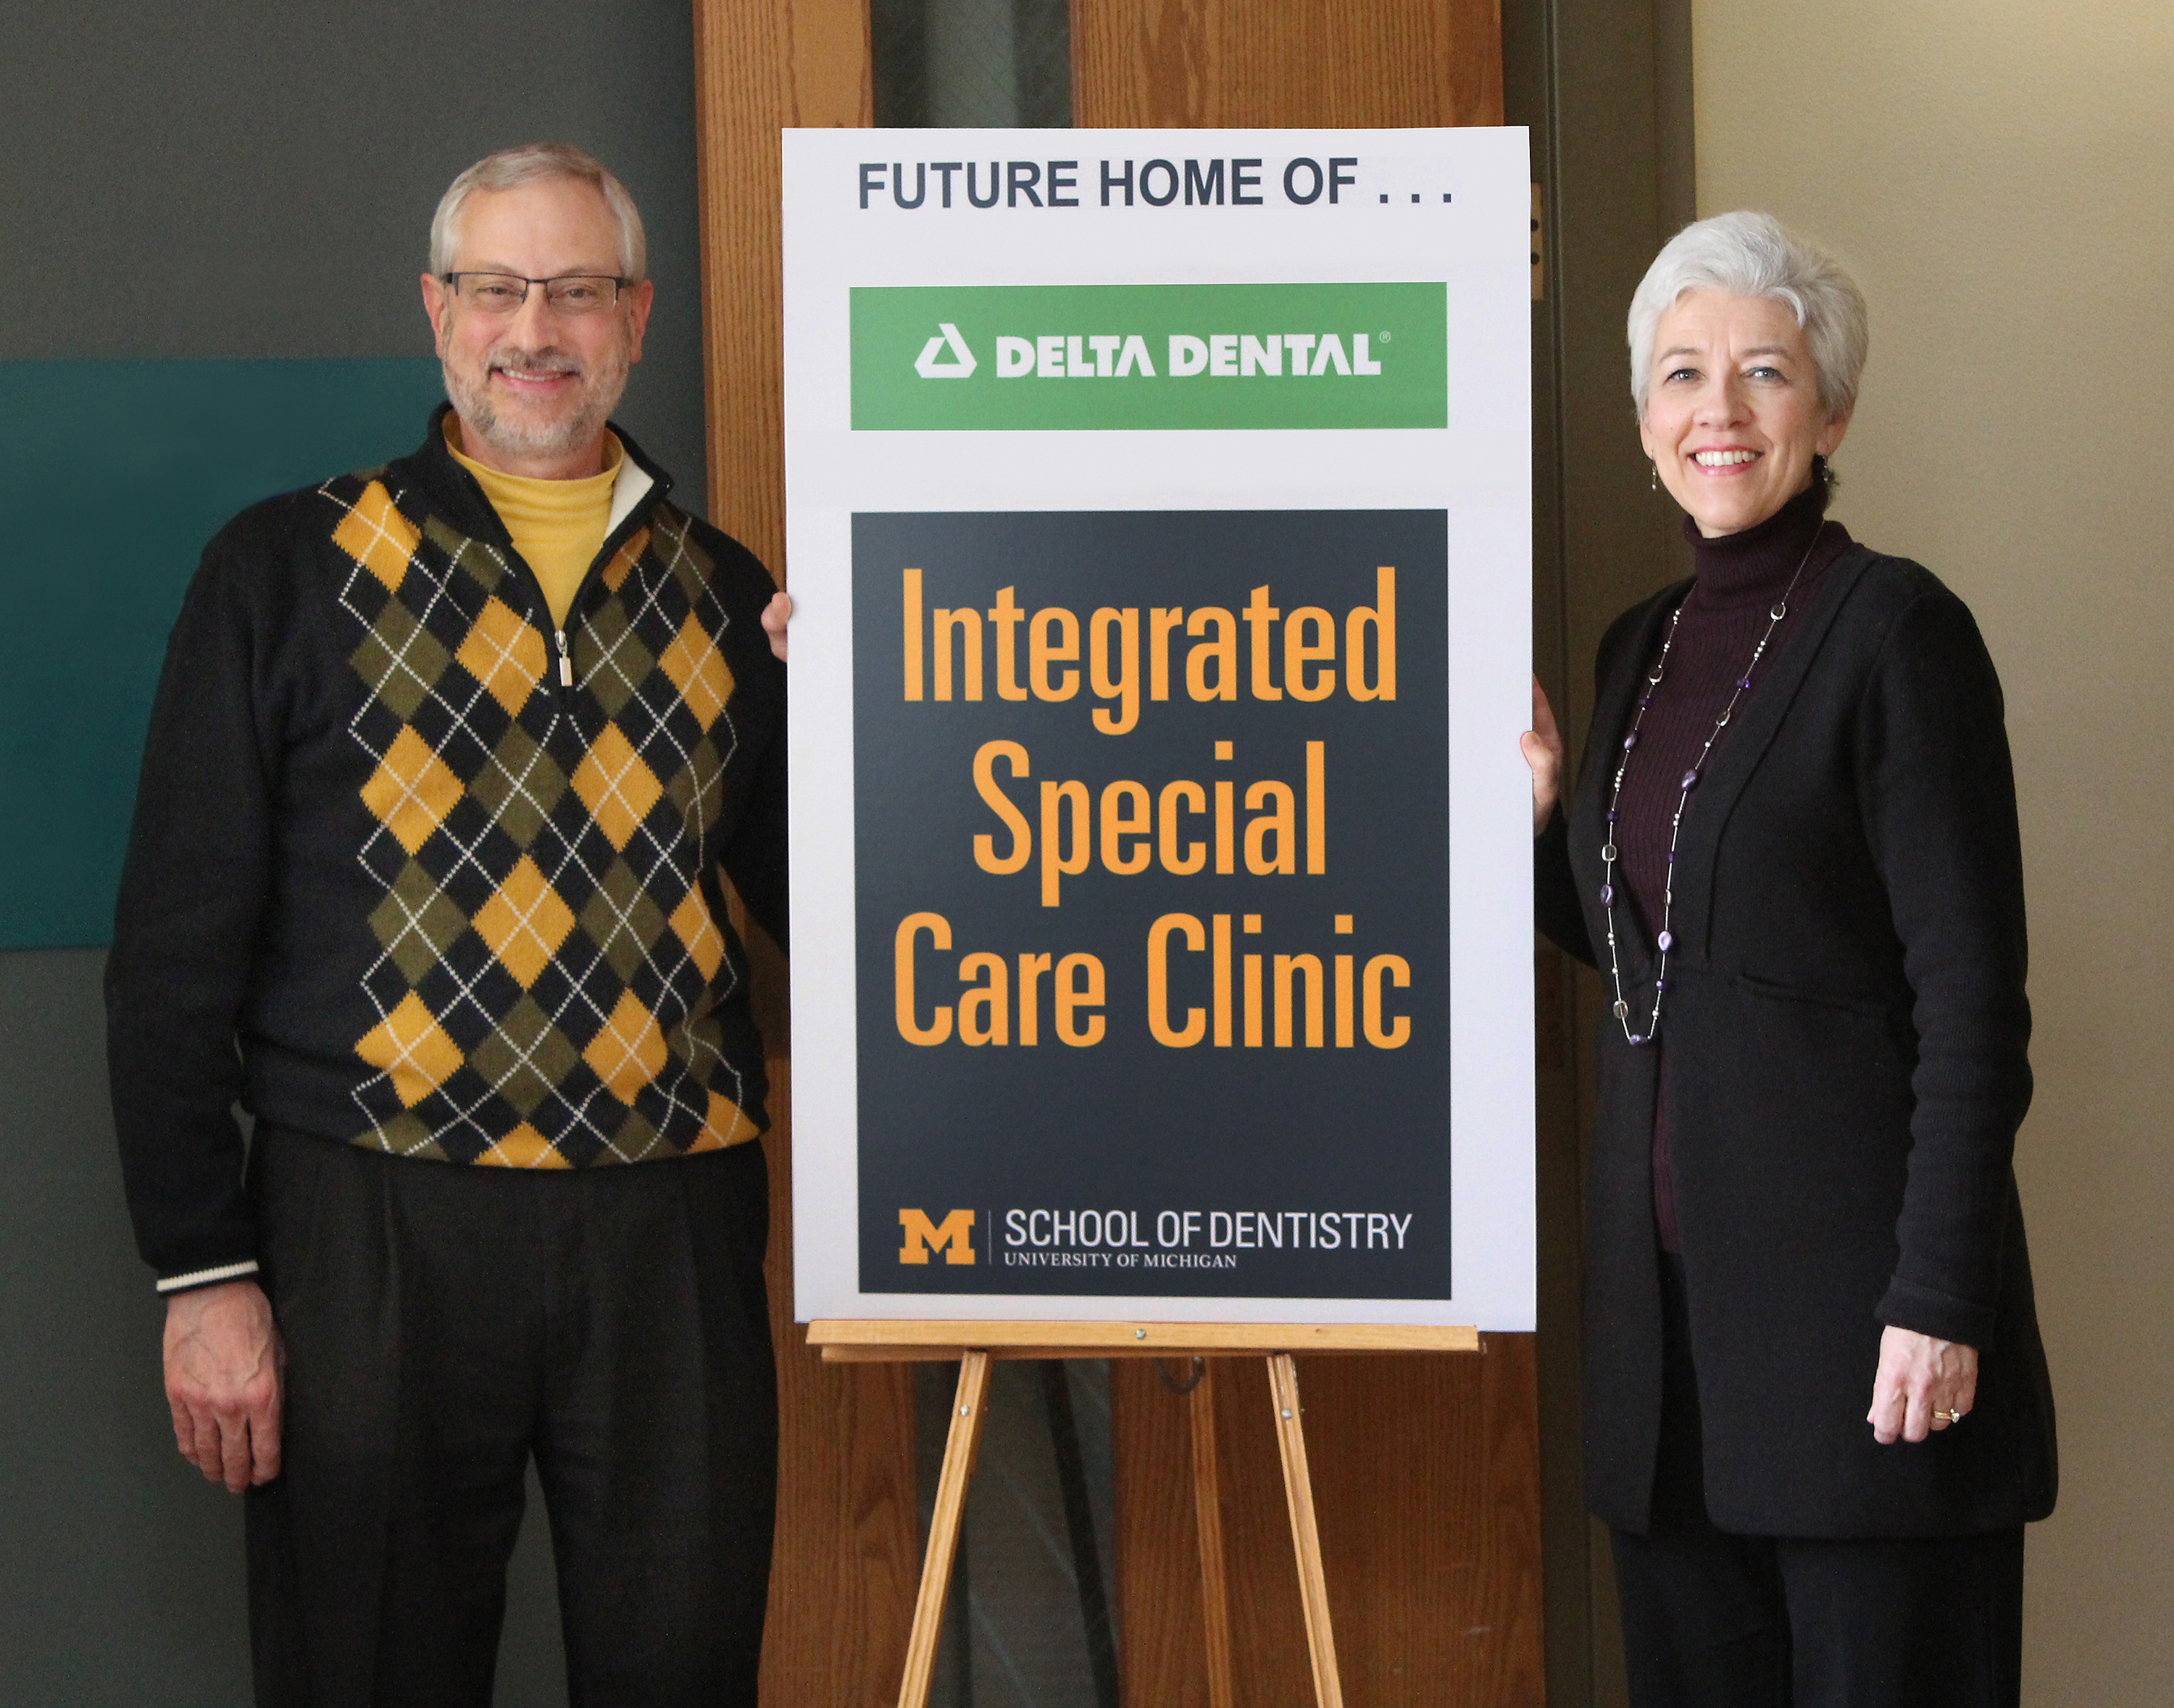 Dr. Stephen Stefanac, U-M senior associate dean and clinical professor of dentistry, and Dr. Carol Anne Murdoch-Kinch, associate dean and clinical professor of dentistry, at the School of Dentistry.